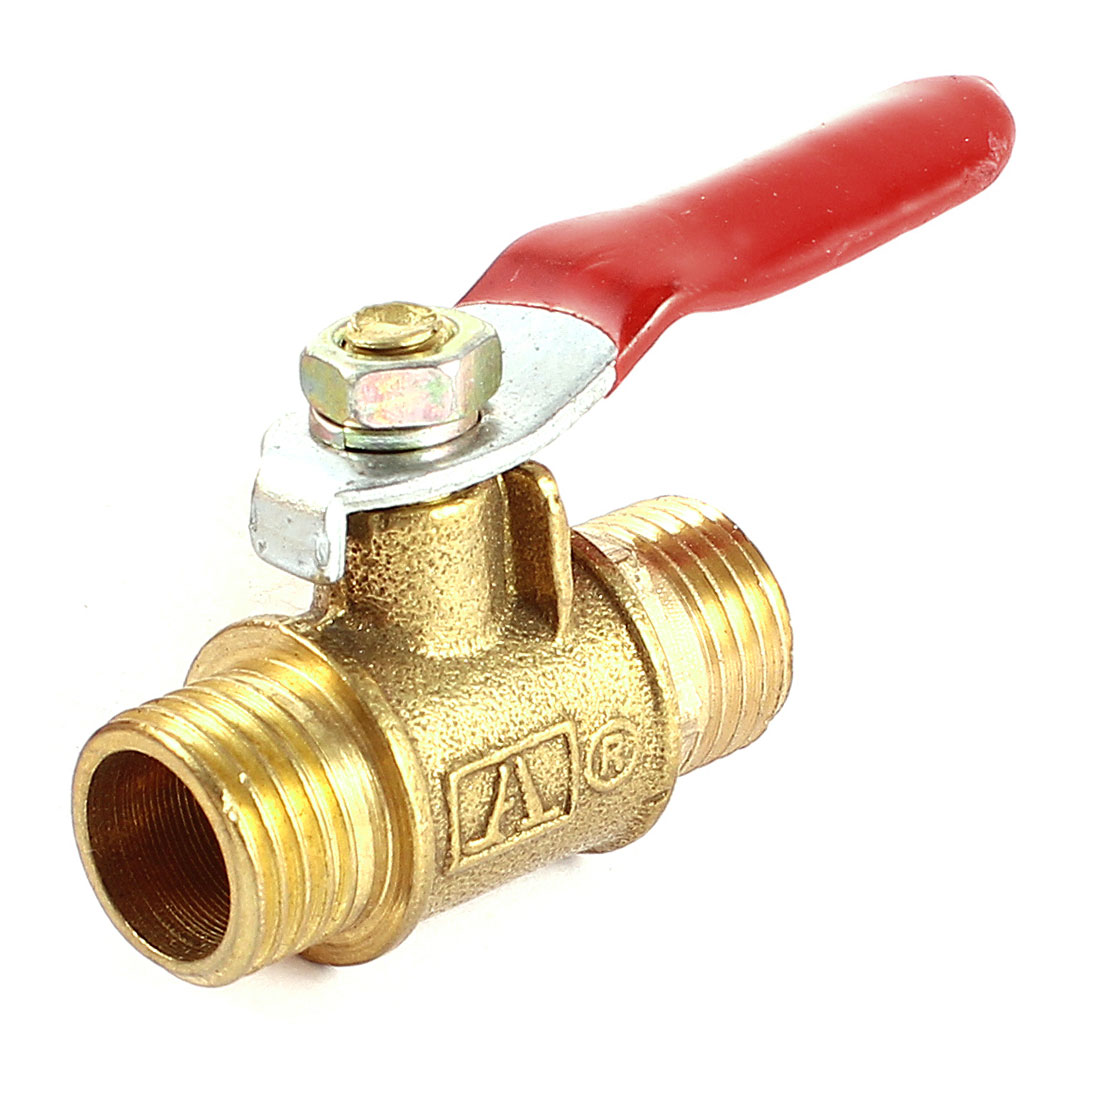 Brass 1/4PT Male Thread Connector Full Port Hand Lever Shut Off Ball Valve